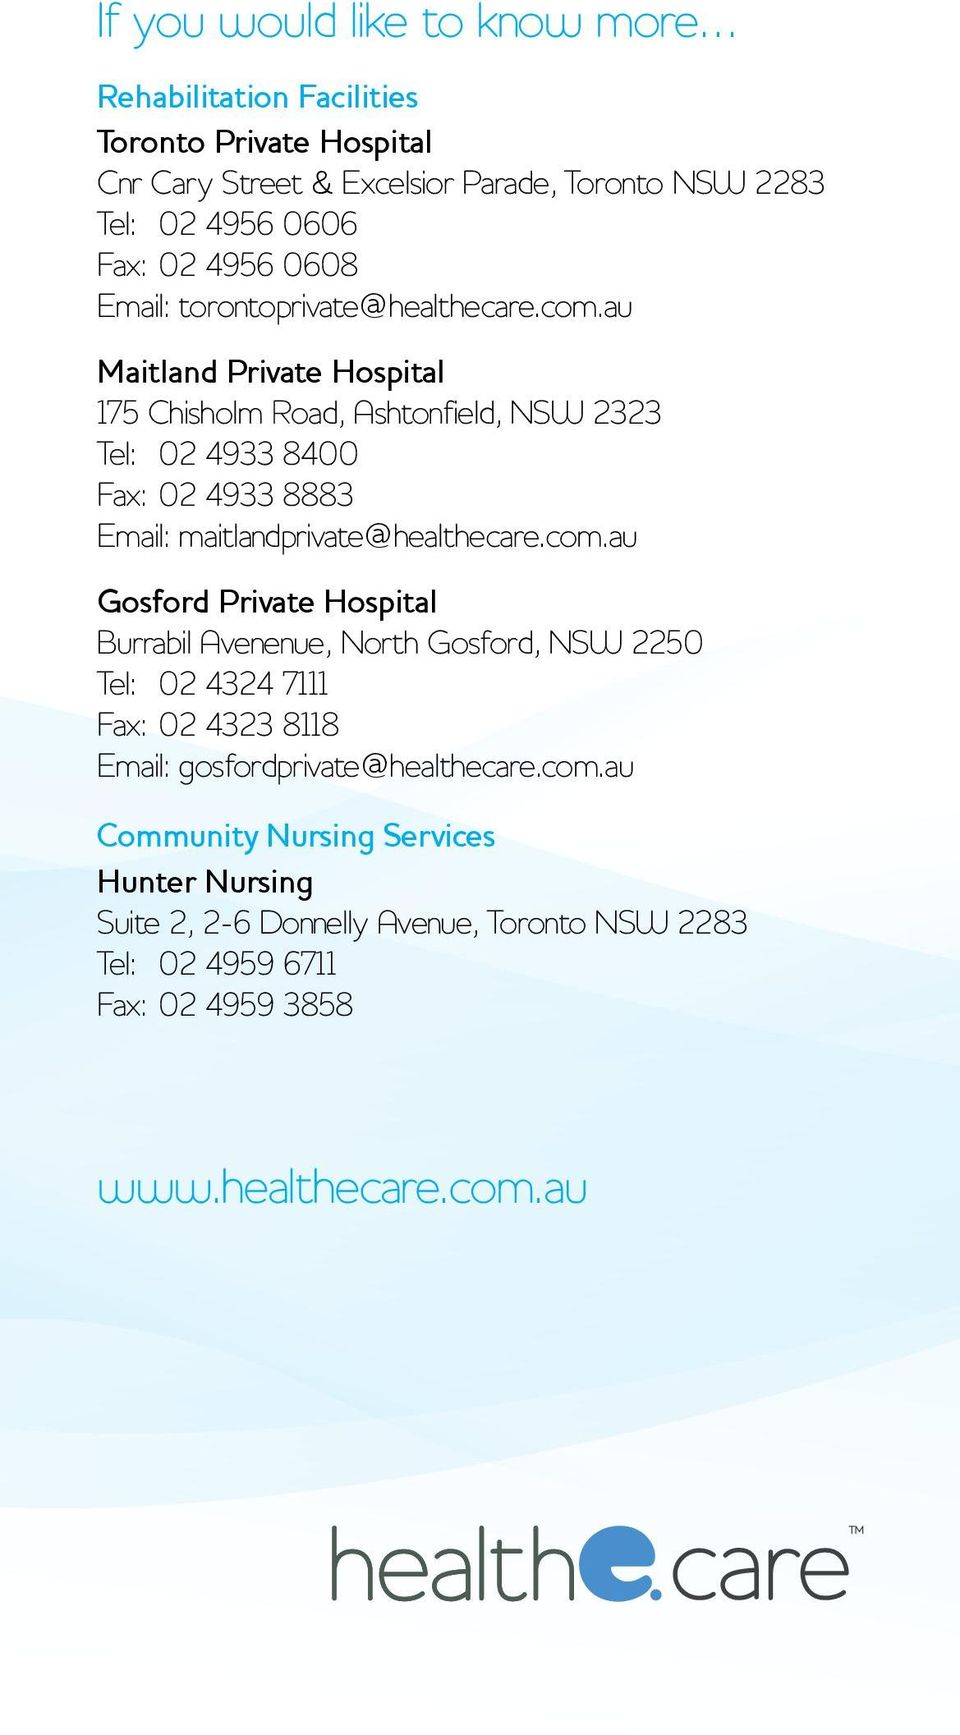 au Maitland Private Hospital 175 Chisholm Road, Ashtonfield, NSW 2323 Tel: 02 4933 8400 Fax: 02 4933 8883 Email: maitlandprivate@healthecare.com.